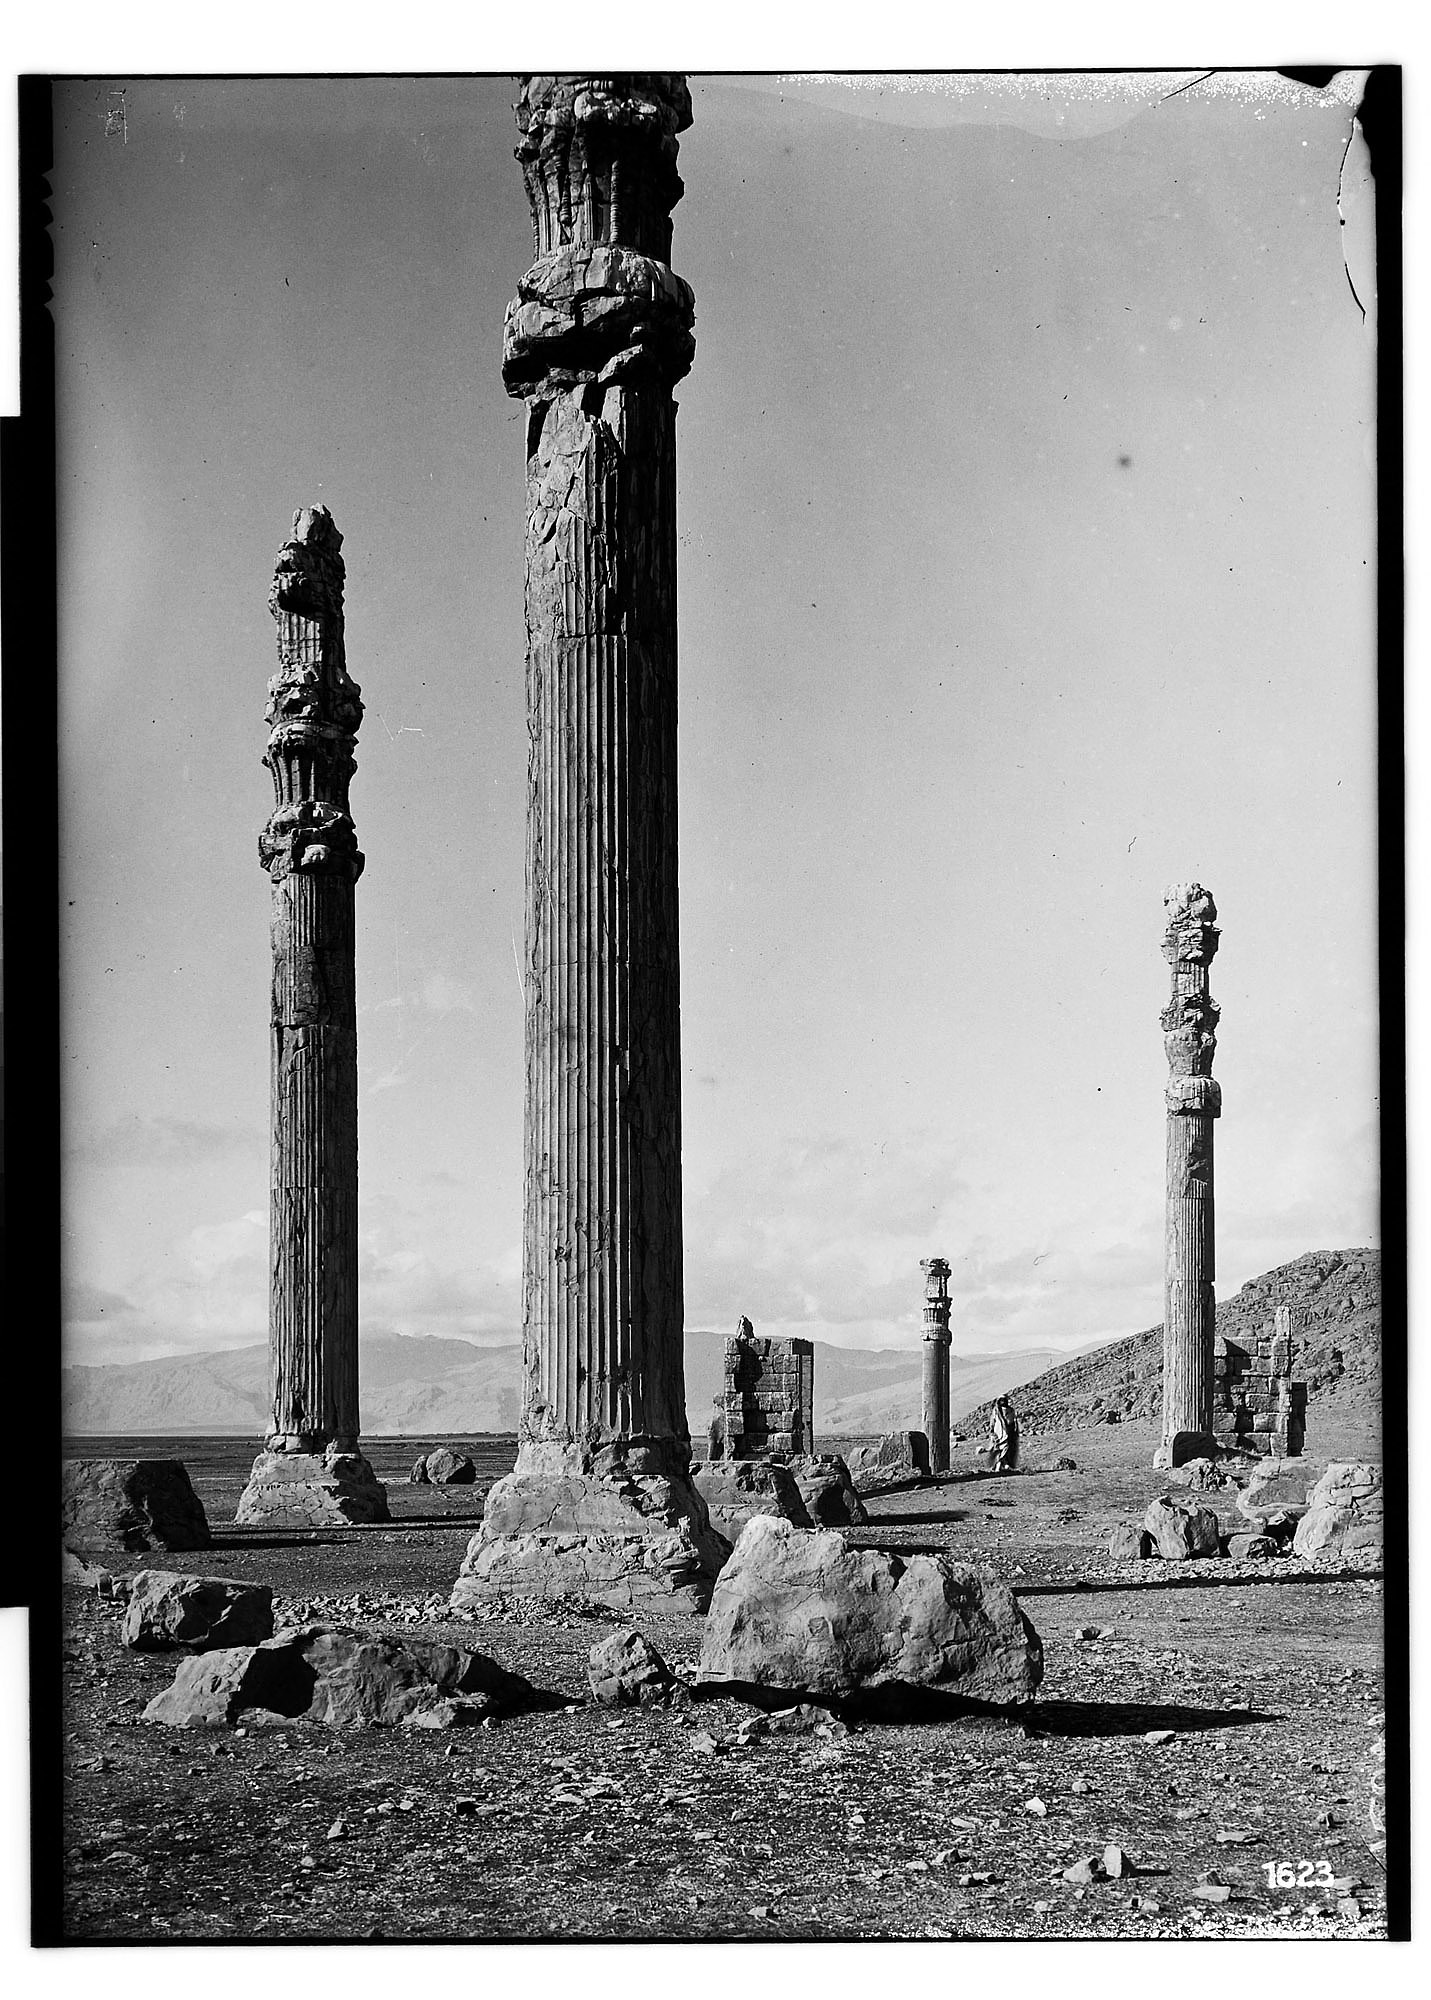 images for Excavation of Persepolis (Iran): Apadana, Columns of Audience Hall and North Portico: View before Excavation graphic